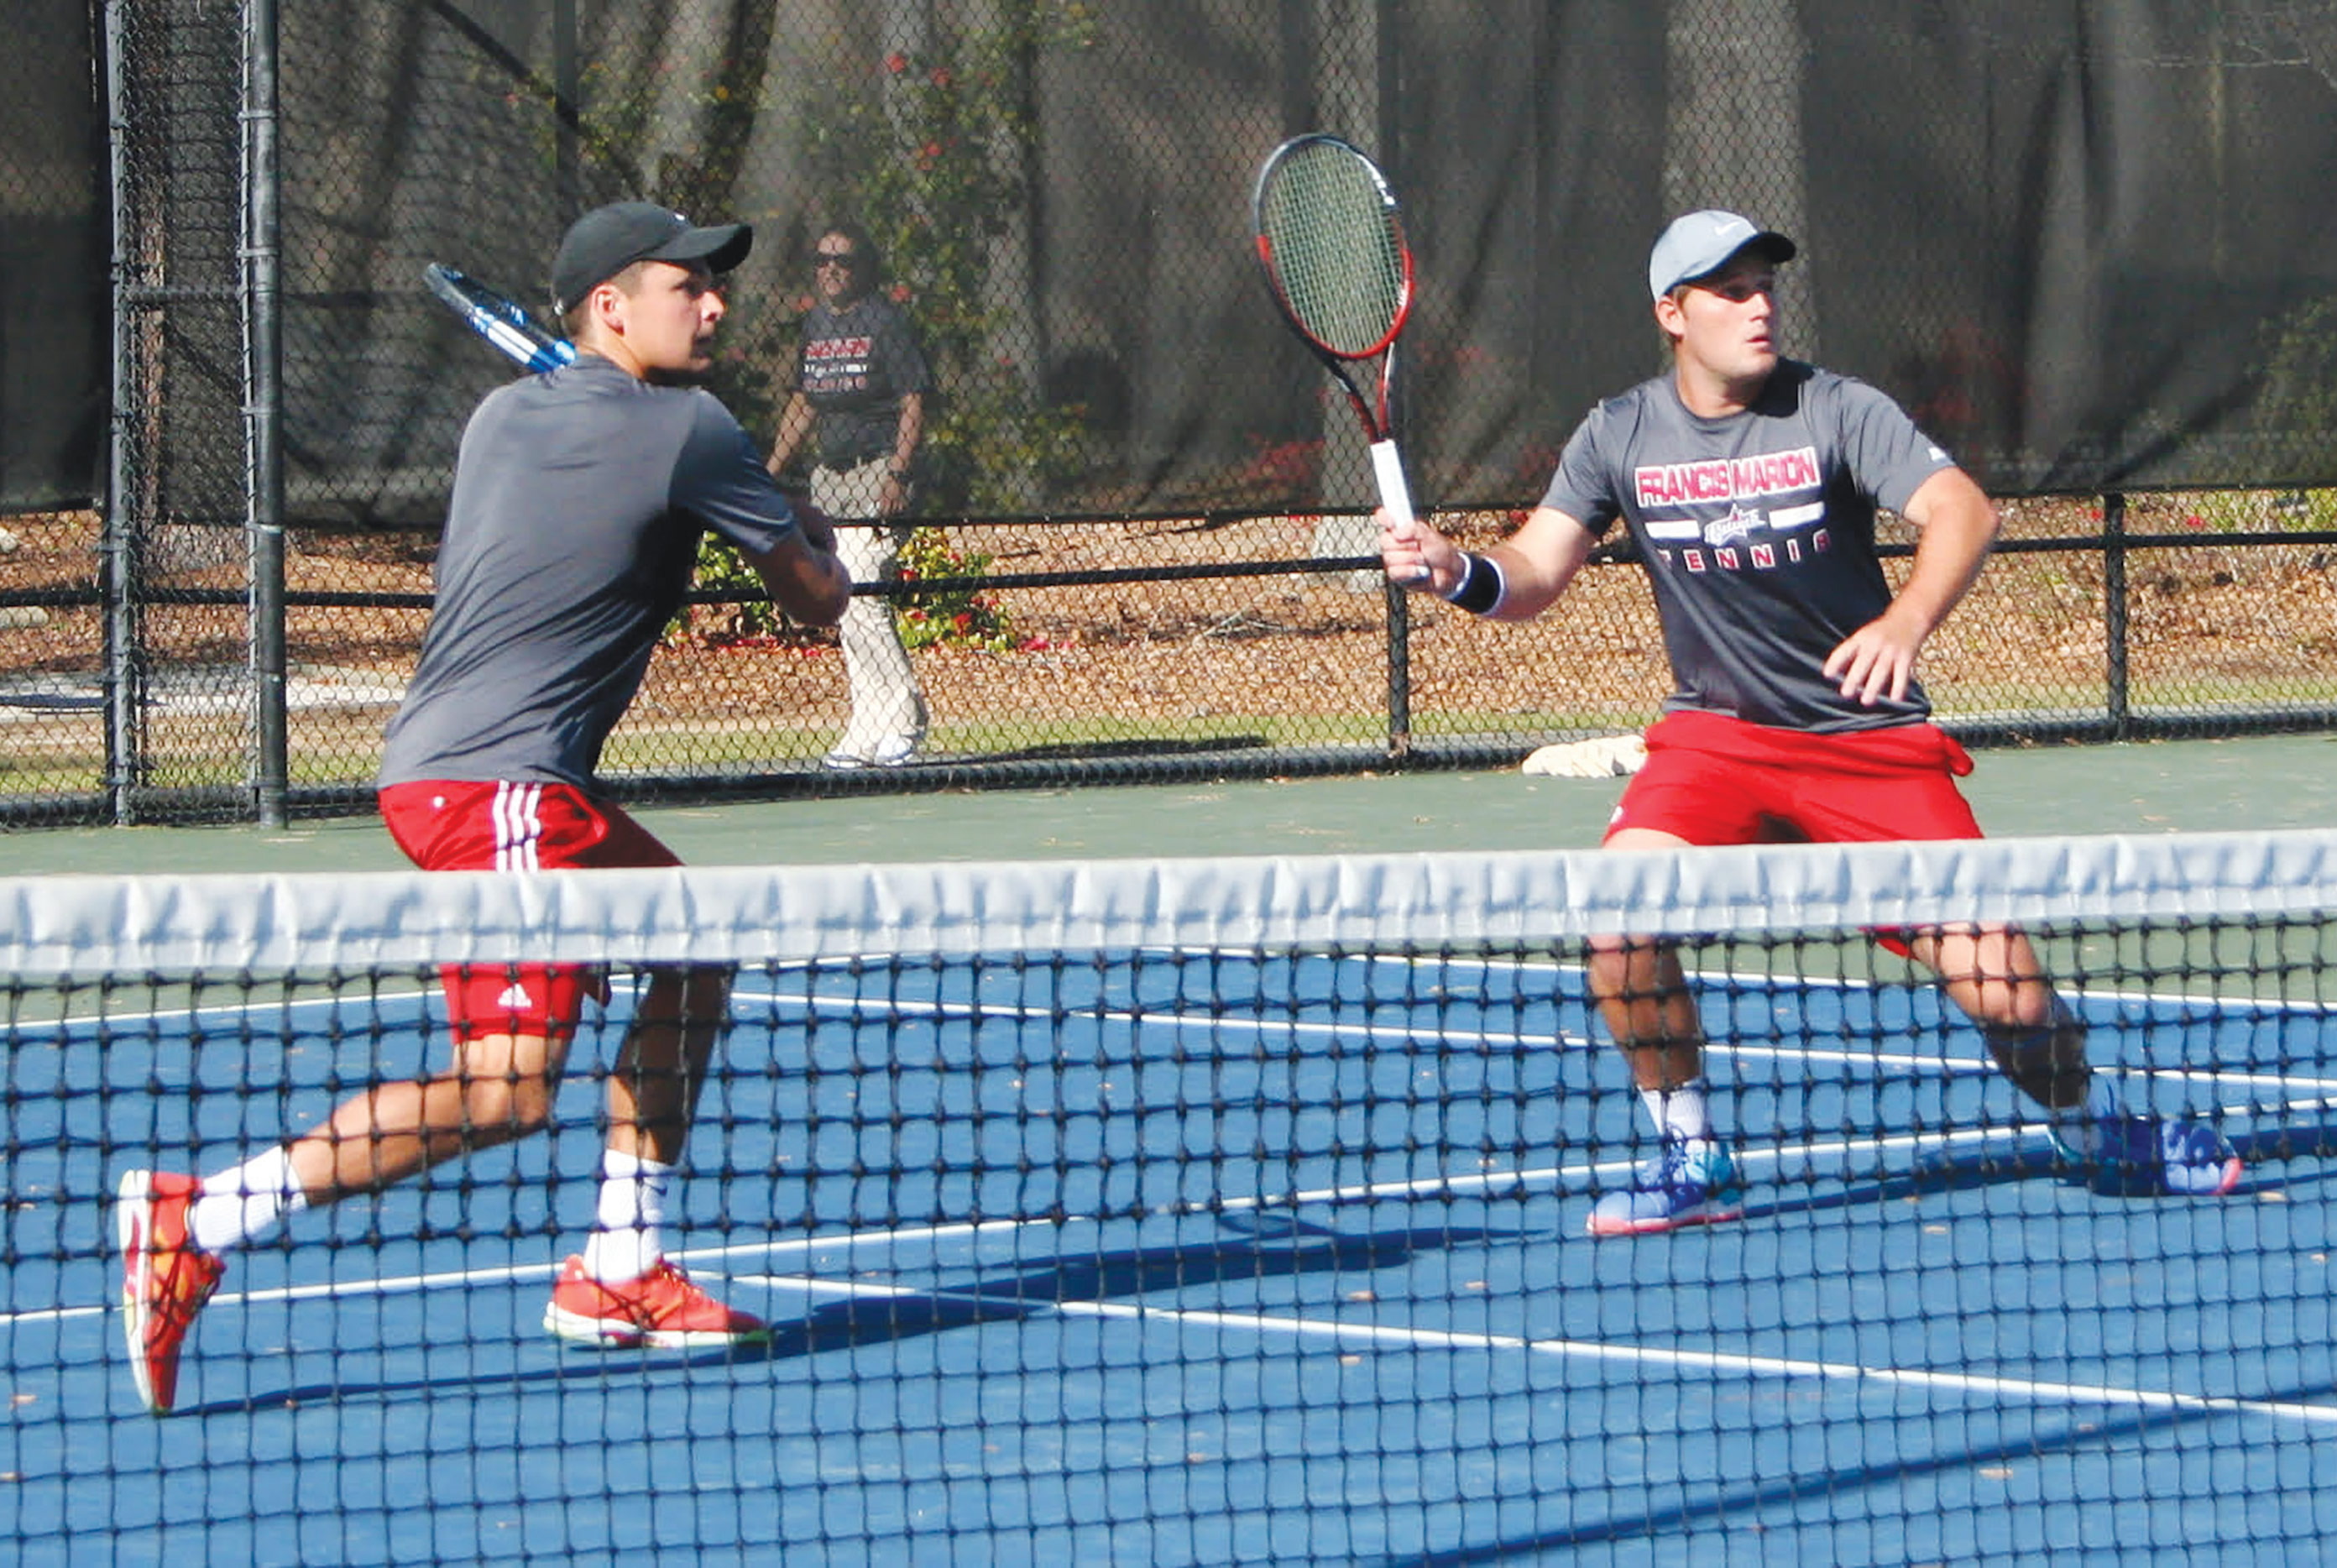 Doubles partners Richard Ashforth and Jannik Roettlingsberger won their doubles match 8-1 against Augusta University.